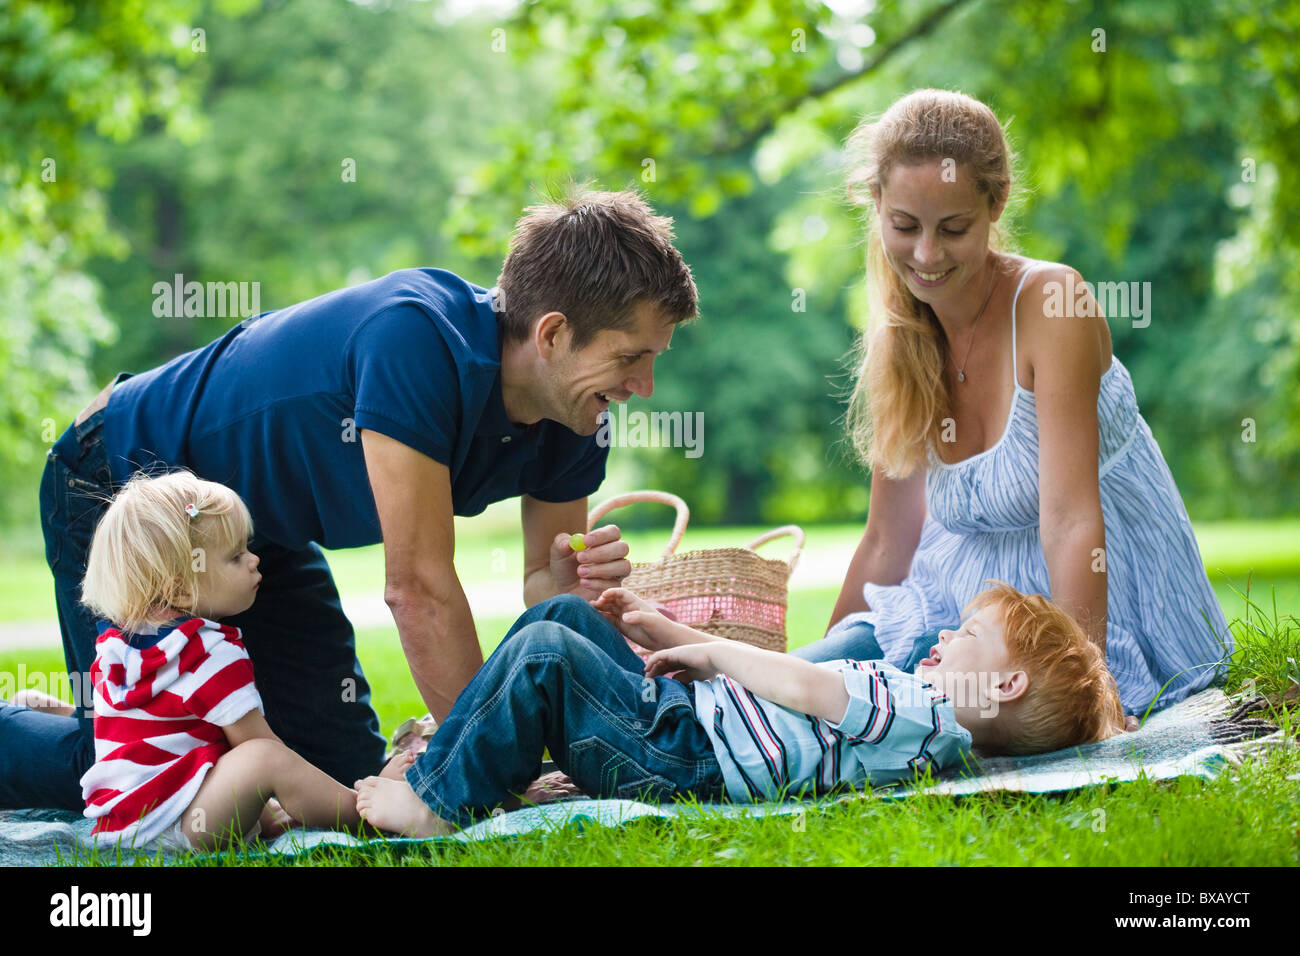 Mid adult parents plying with children during picnic - Stock Image